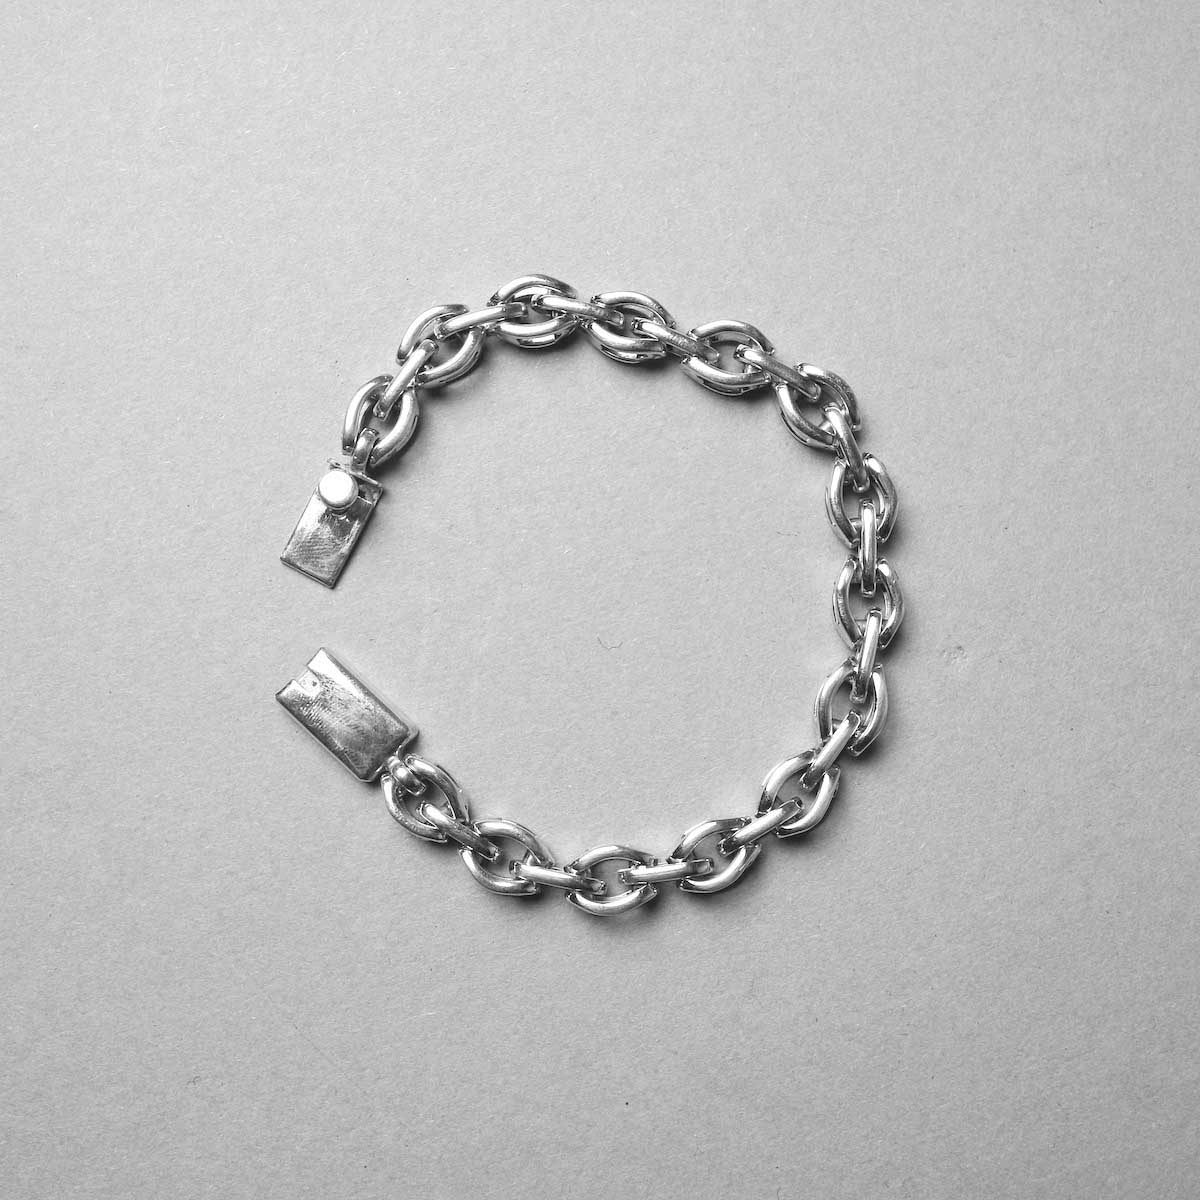 FIFTH SILVER / Silver-CCC-2 Silver Chain Bracelet (7mm)